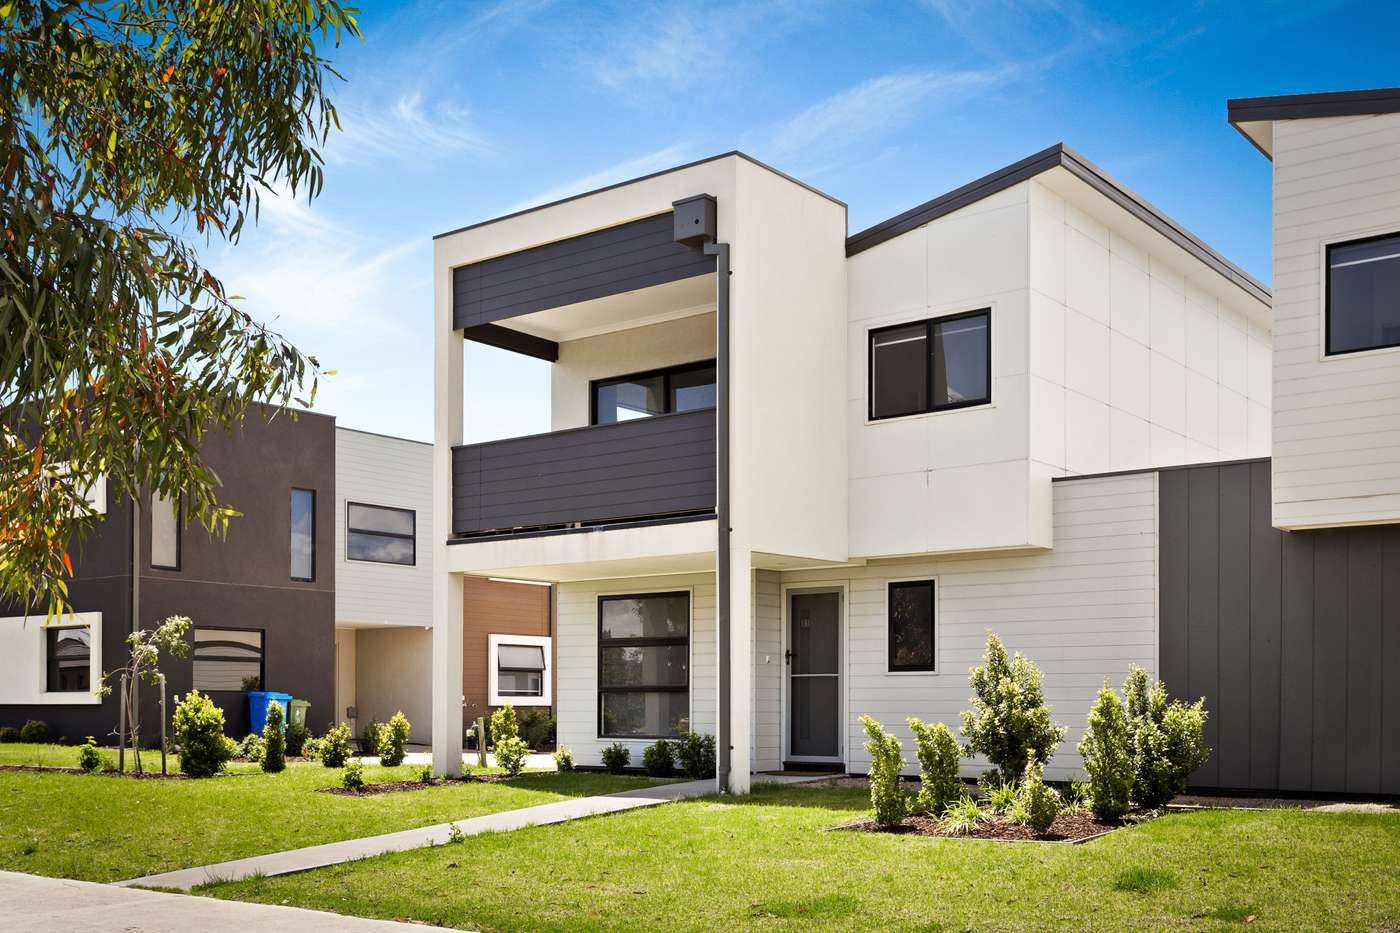 Main view of Homely unit listing, 11 Nugget Way, Cranbourne East, VIC 3977